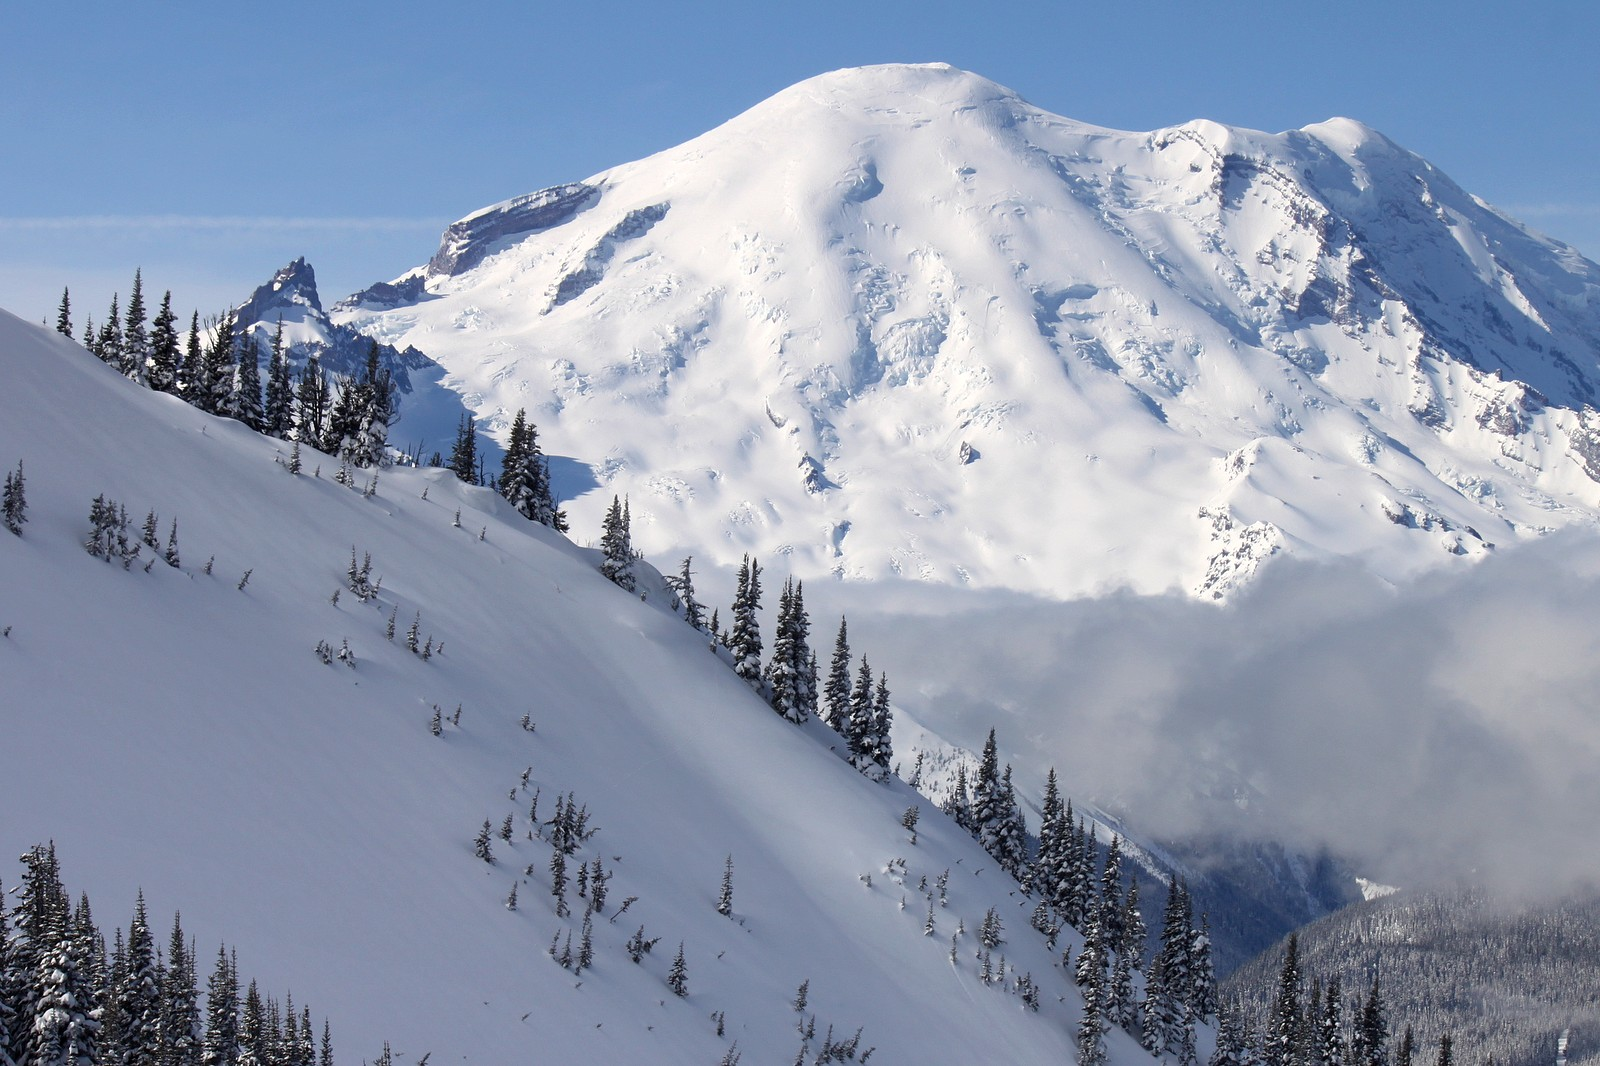 Mt. Rainier from Crystal Mountain